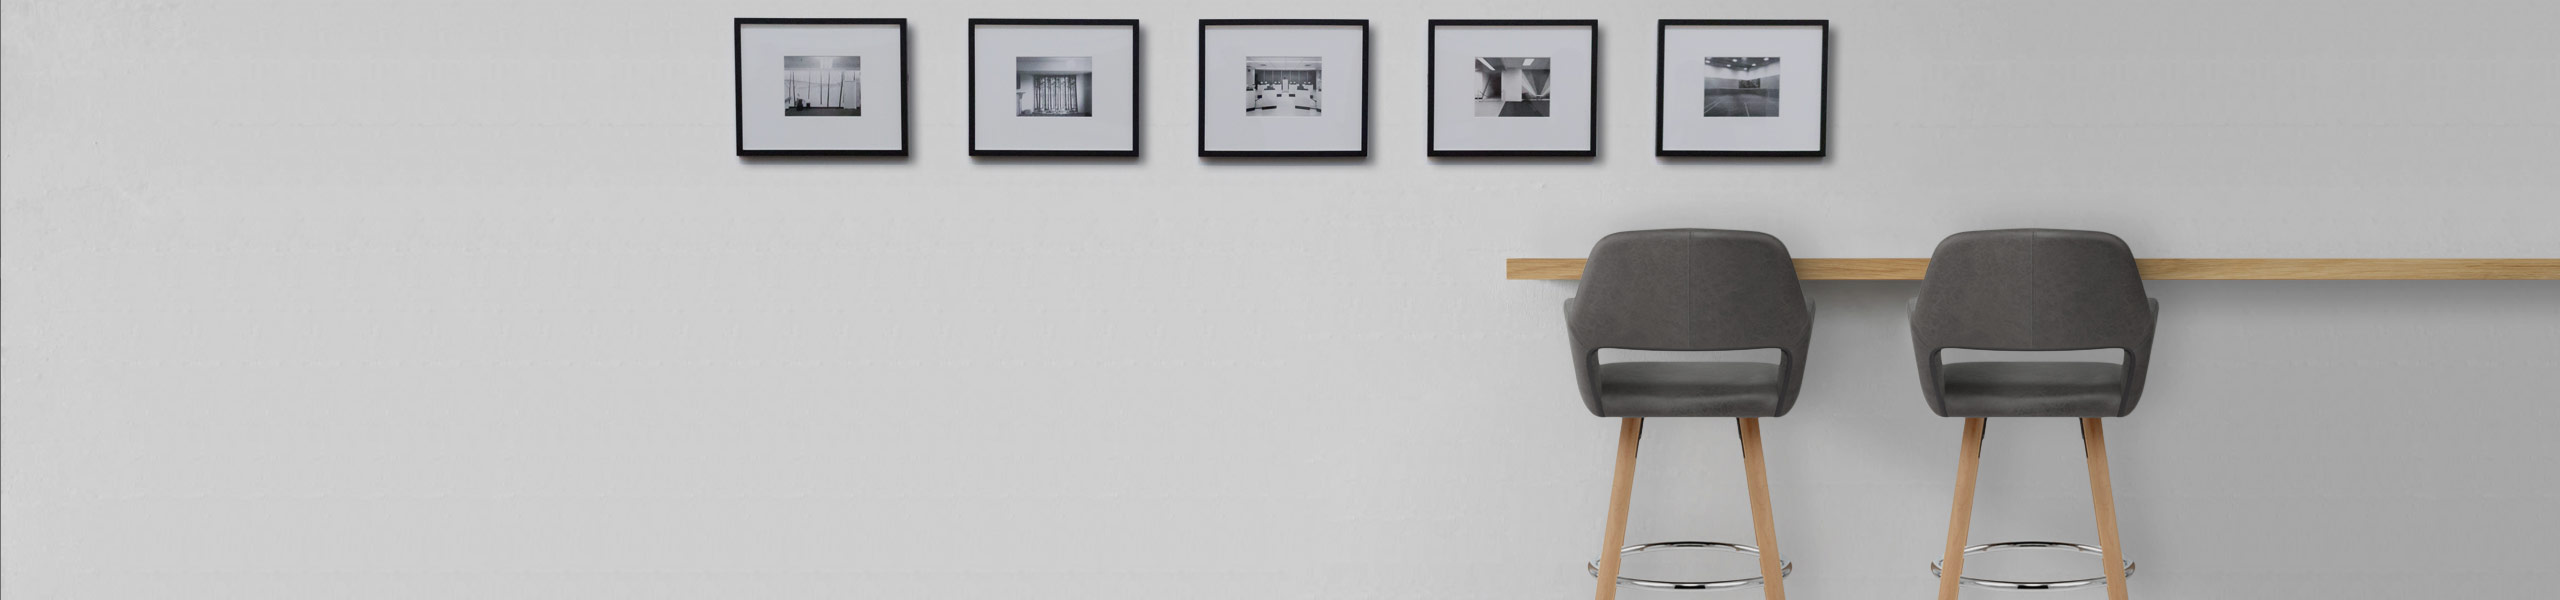 Kite Wooden Stool Grey Video Banner